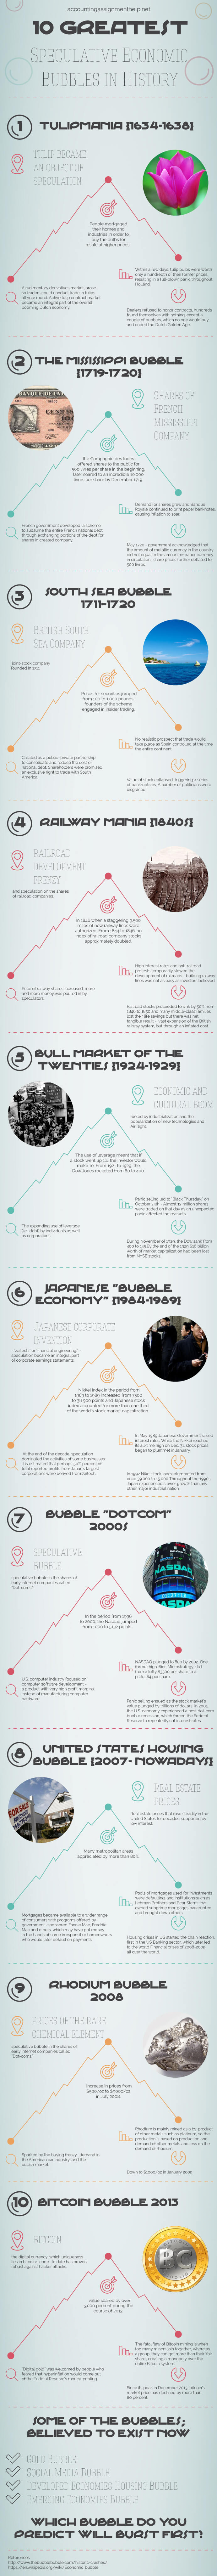 Greatest-Speculative-Economic-Bubbles-in-History-infographic